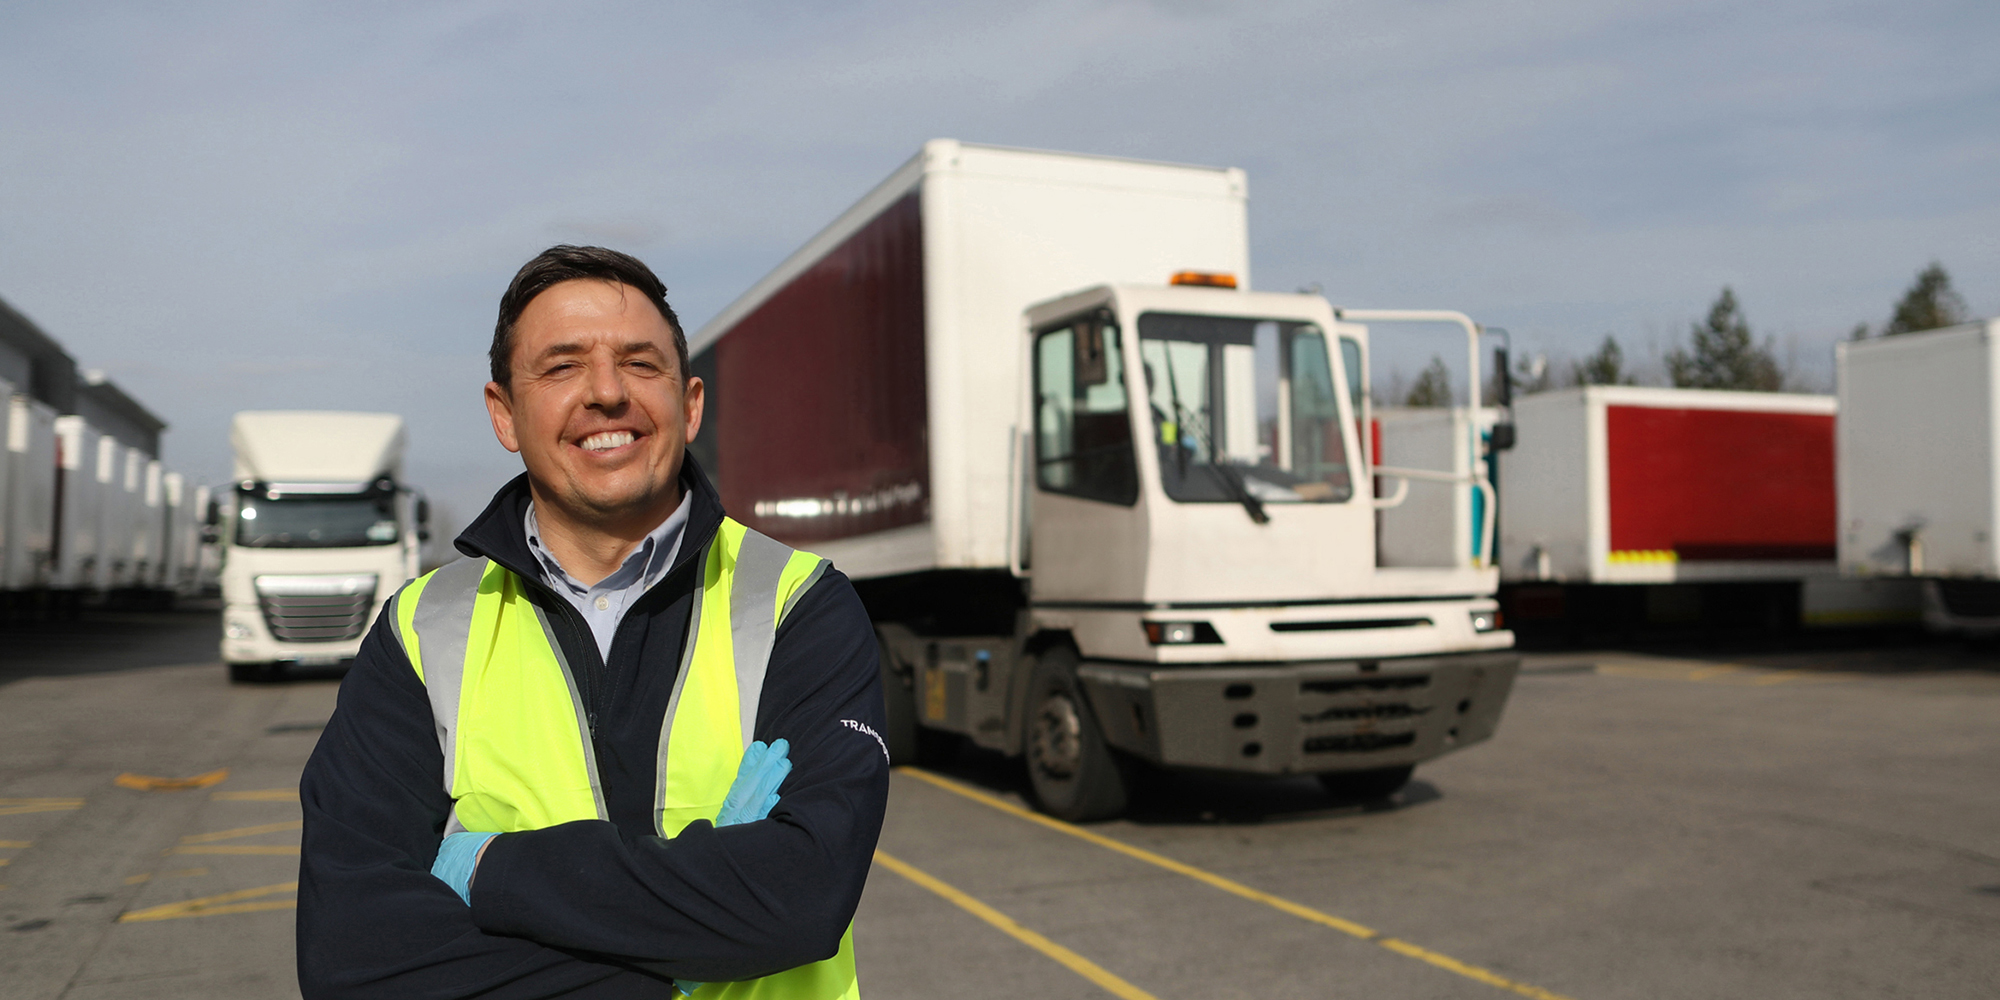 A man standing in front of a truck